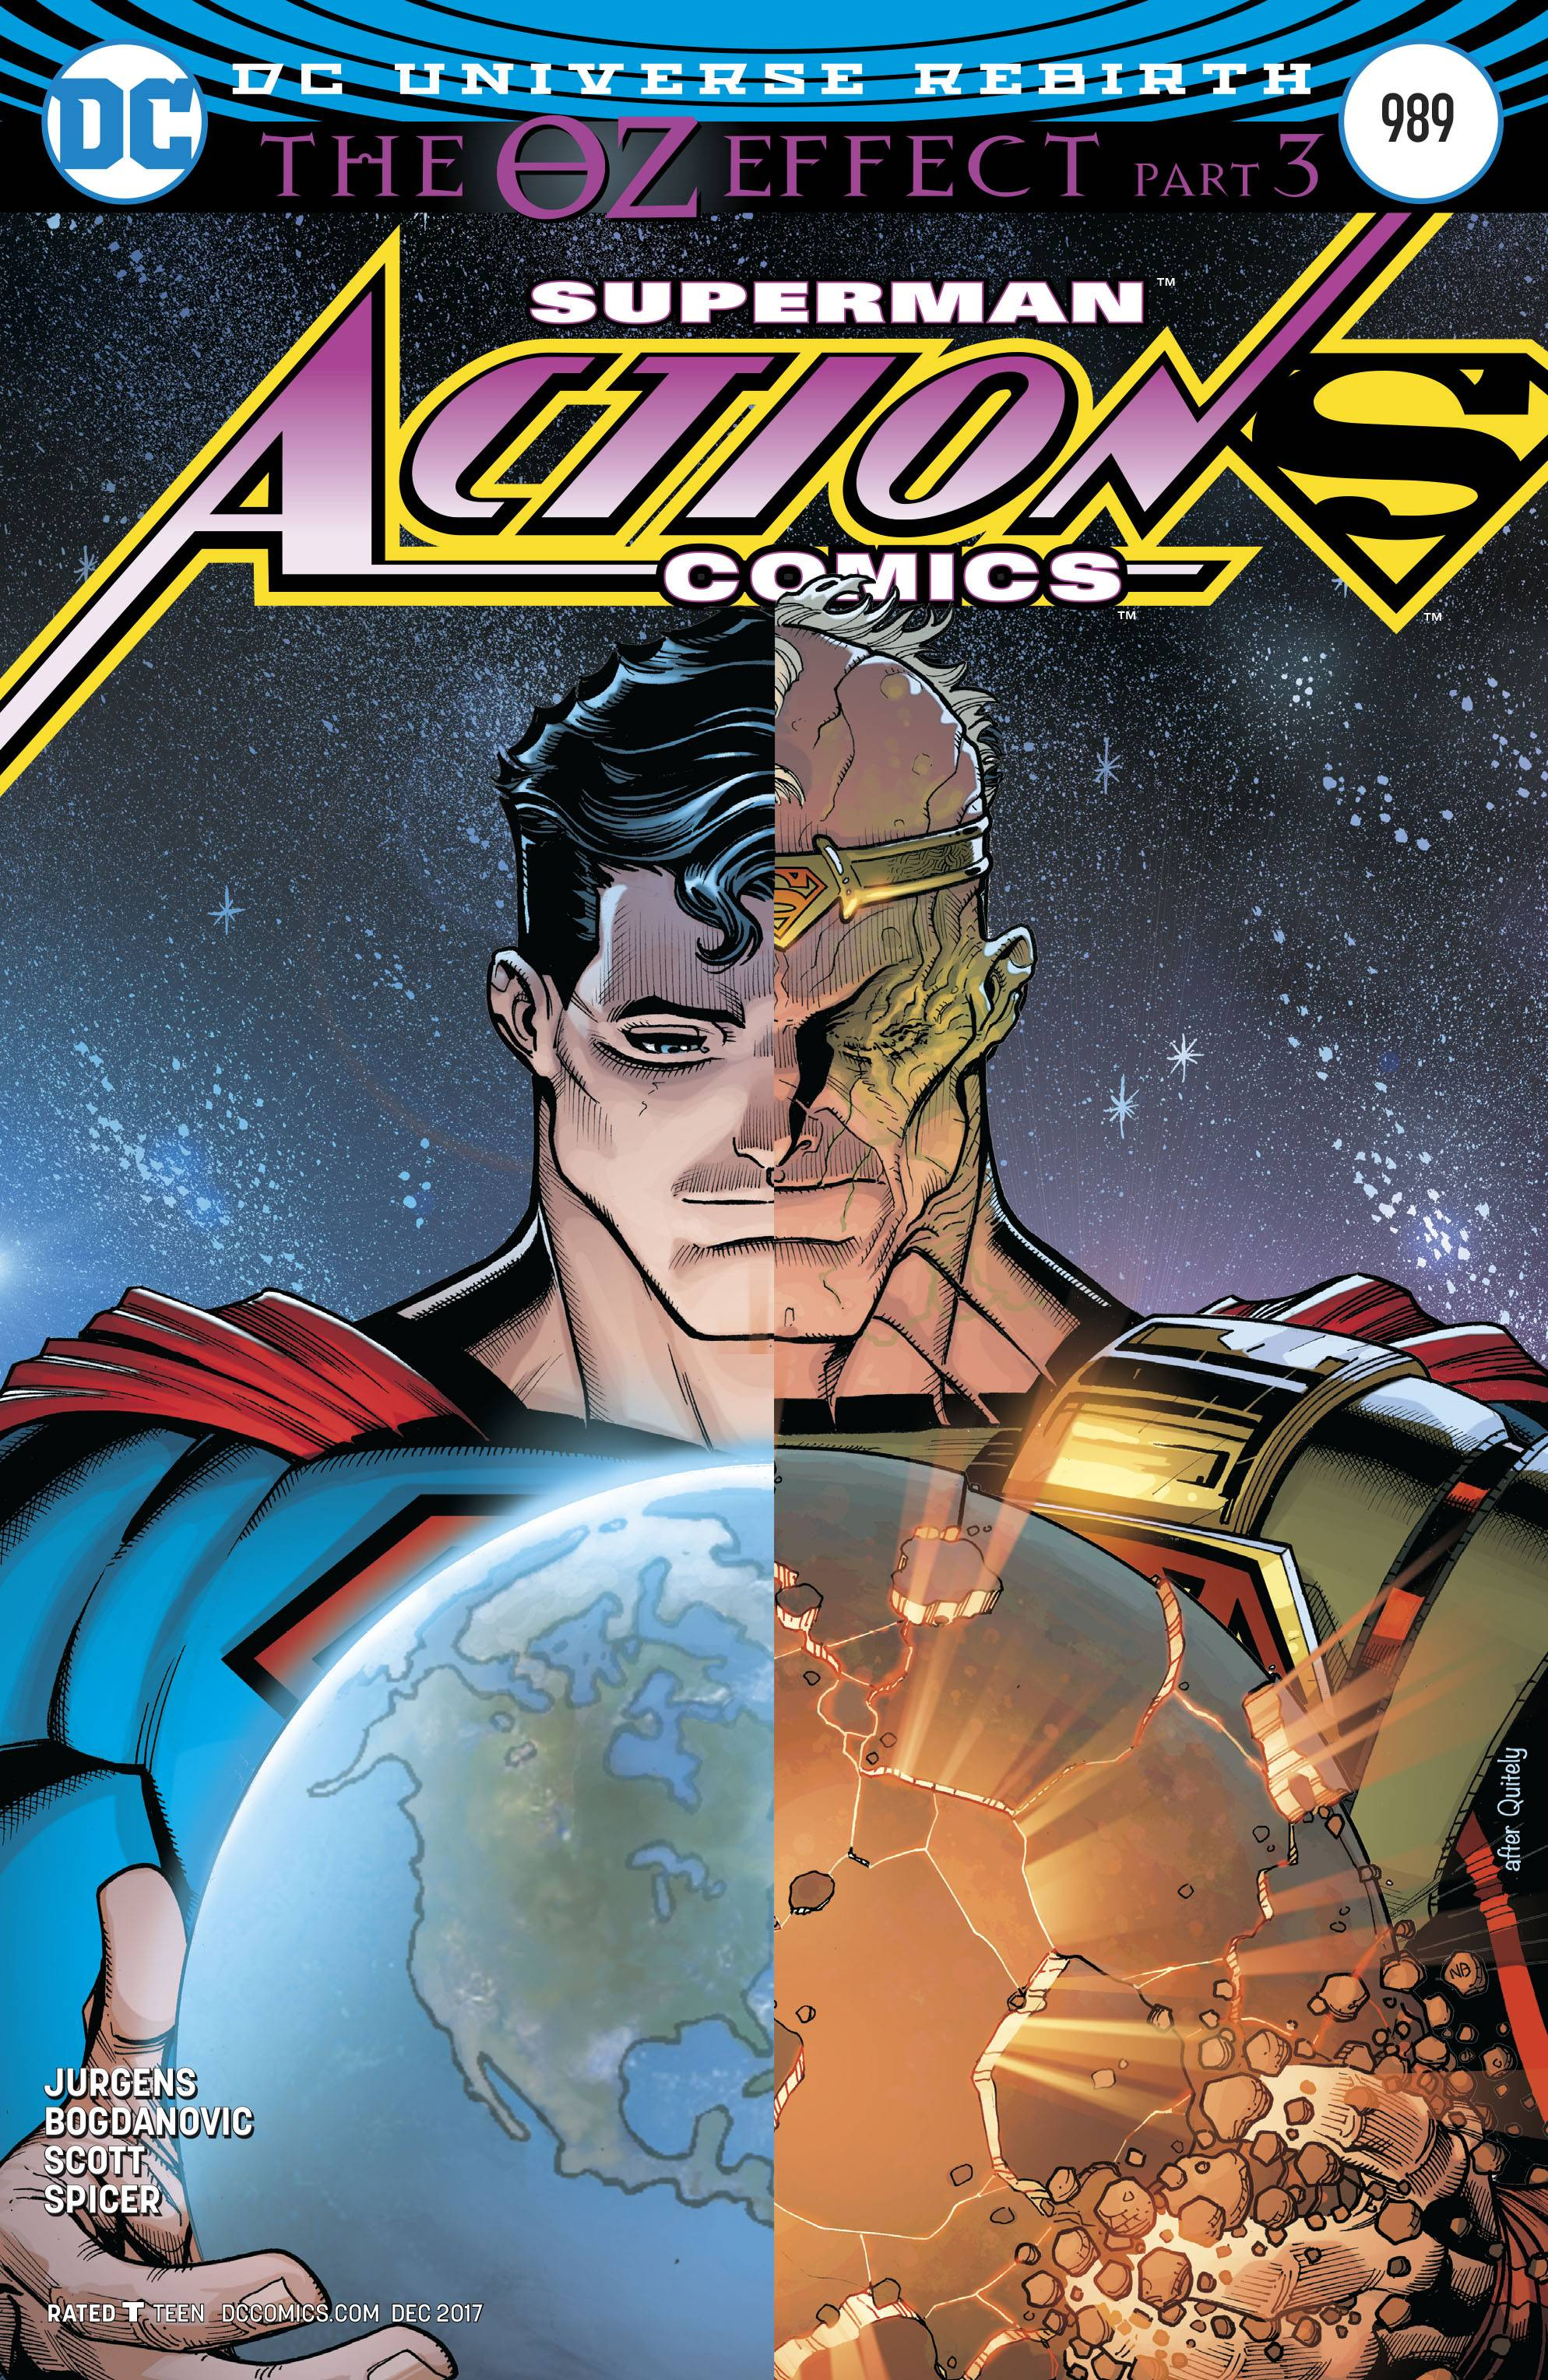 10/11/2017 ACTION COMICS 989 LENTICULAR (OZ EFFECT)